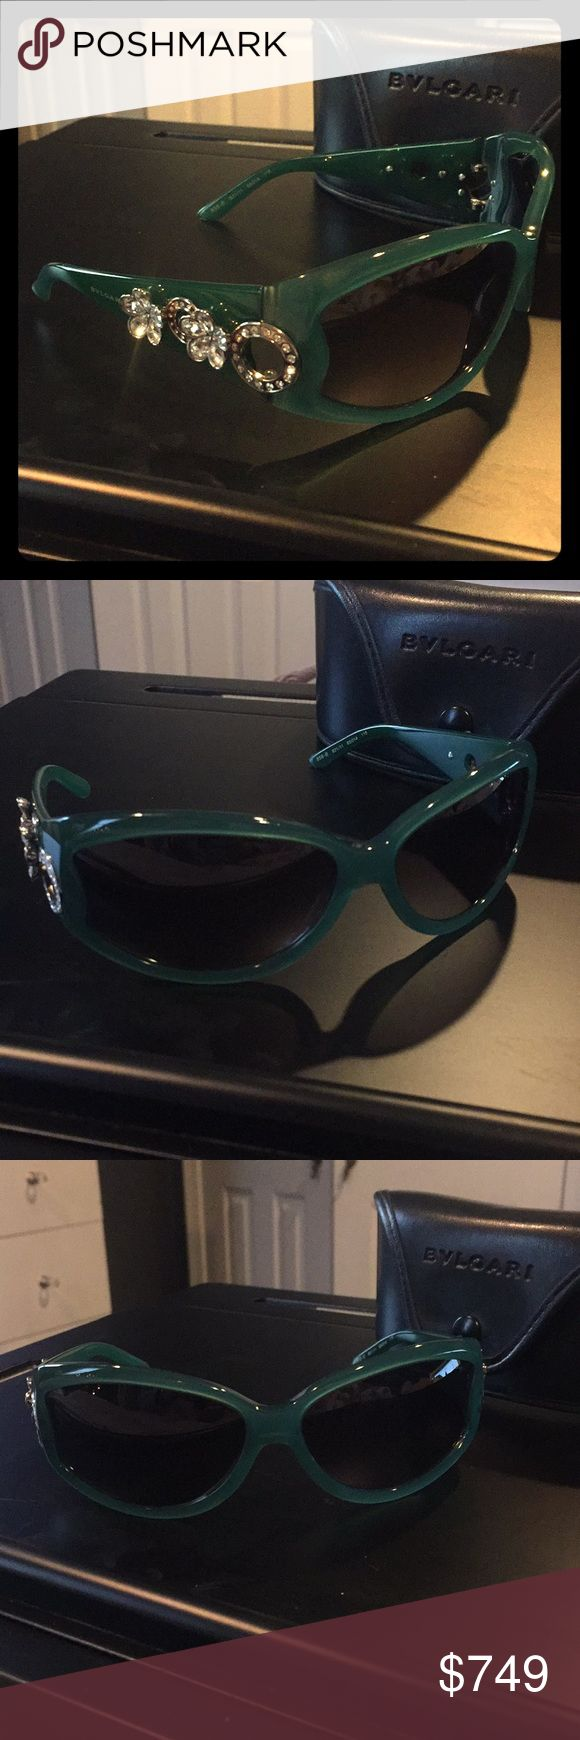 Bvlgari Swarovski Crystal Flower  RARE -Jade Green Authentic bvlgari Swarovski sunglasses. Black lenses (no scratches) with Jade Green color frames.  Wide acetate arms are embellished with Swarovski crystal flowers - no crystals missing. Mint condition item. Will include original case ( has a small white scuff on case on back) purchased at Optica in the Mandalay Bay in Las Vegas in 2006 bvlgari Accessories Sunglasses